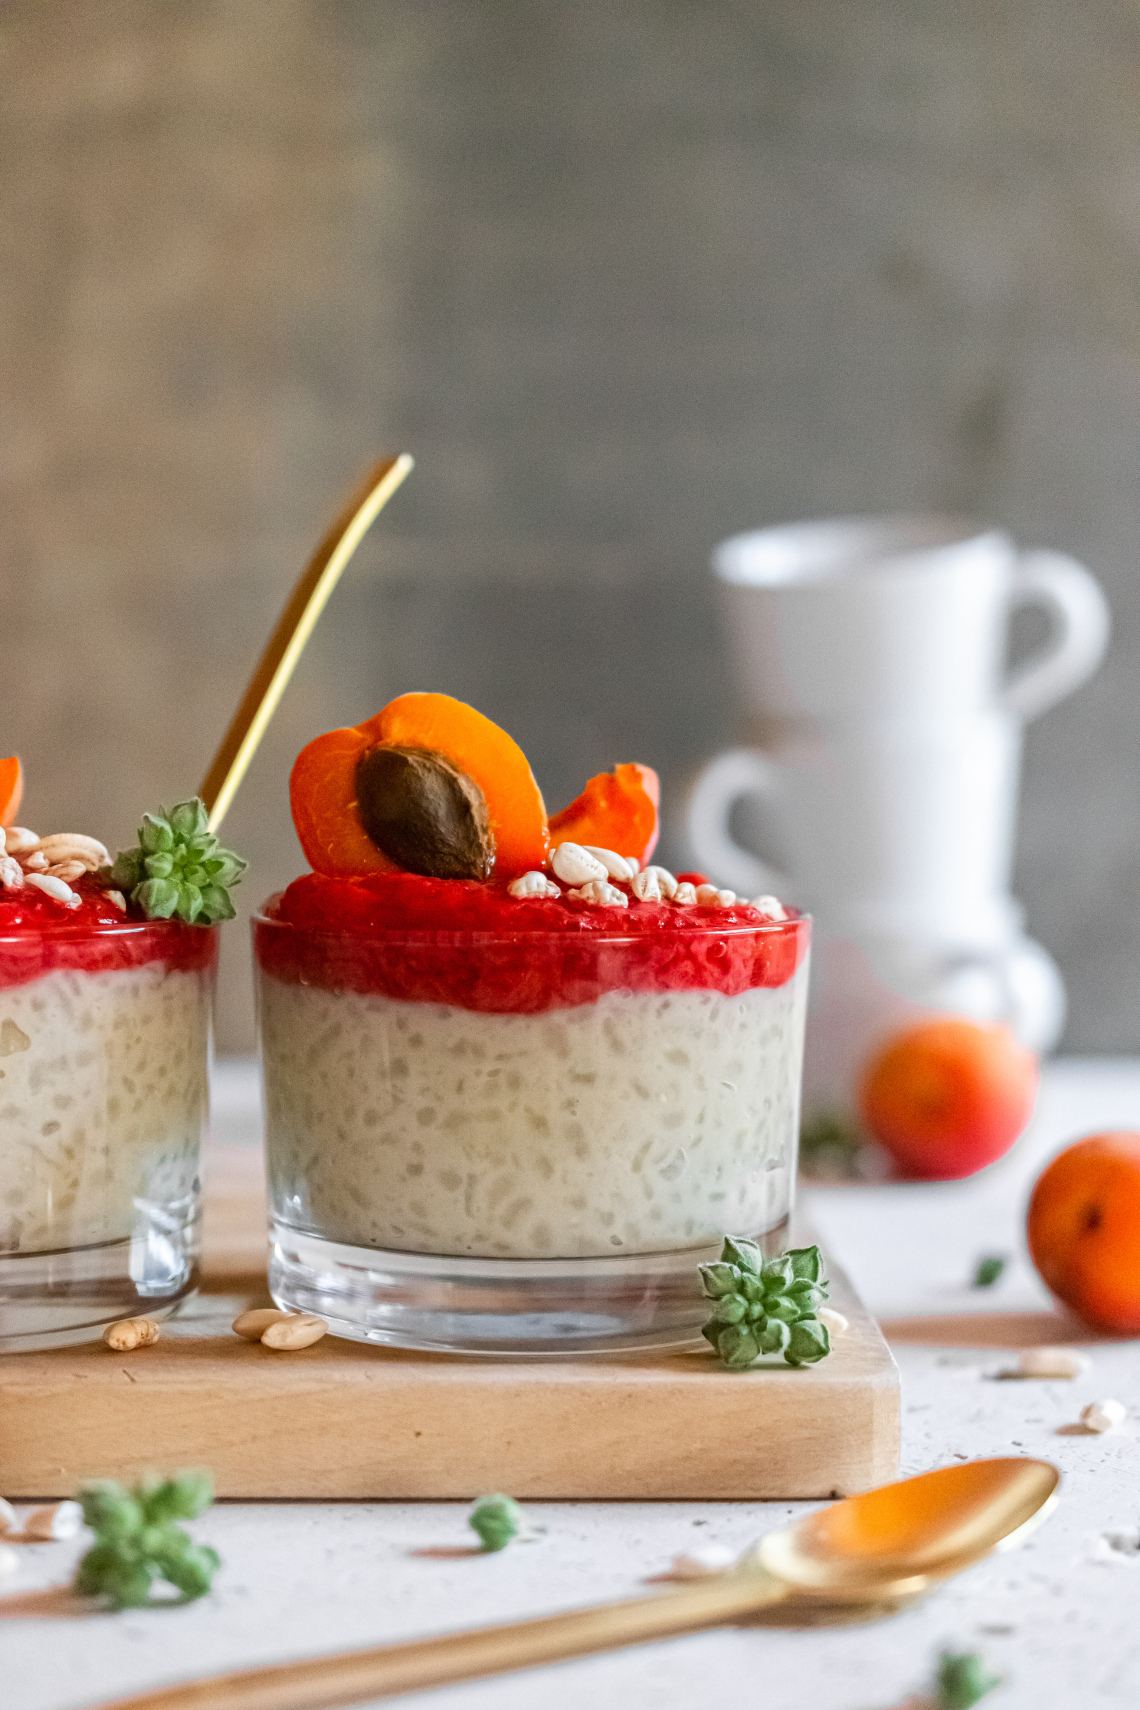 Foolproof Rice Pudding